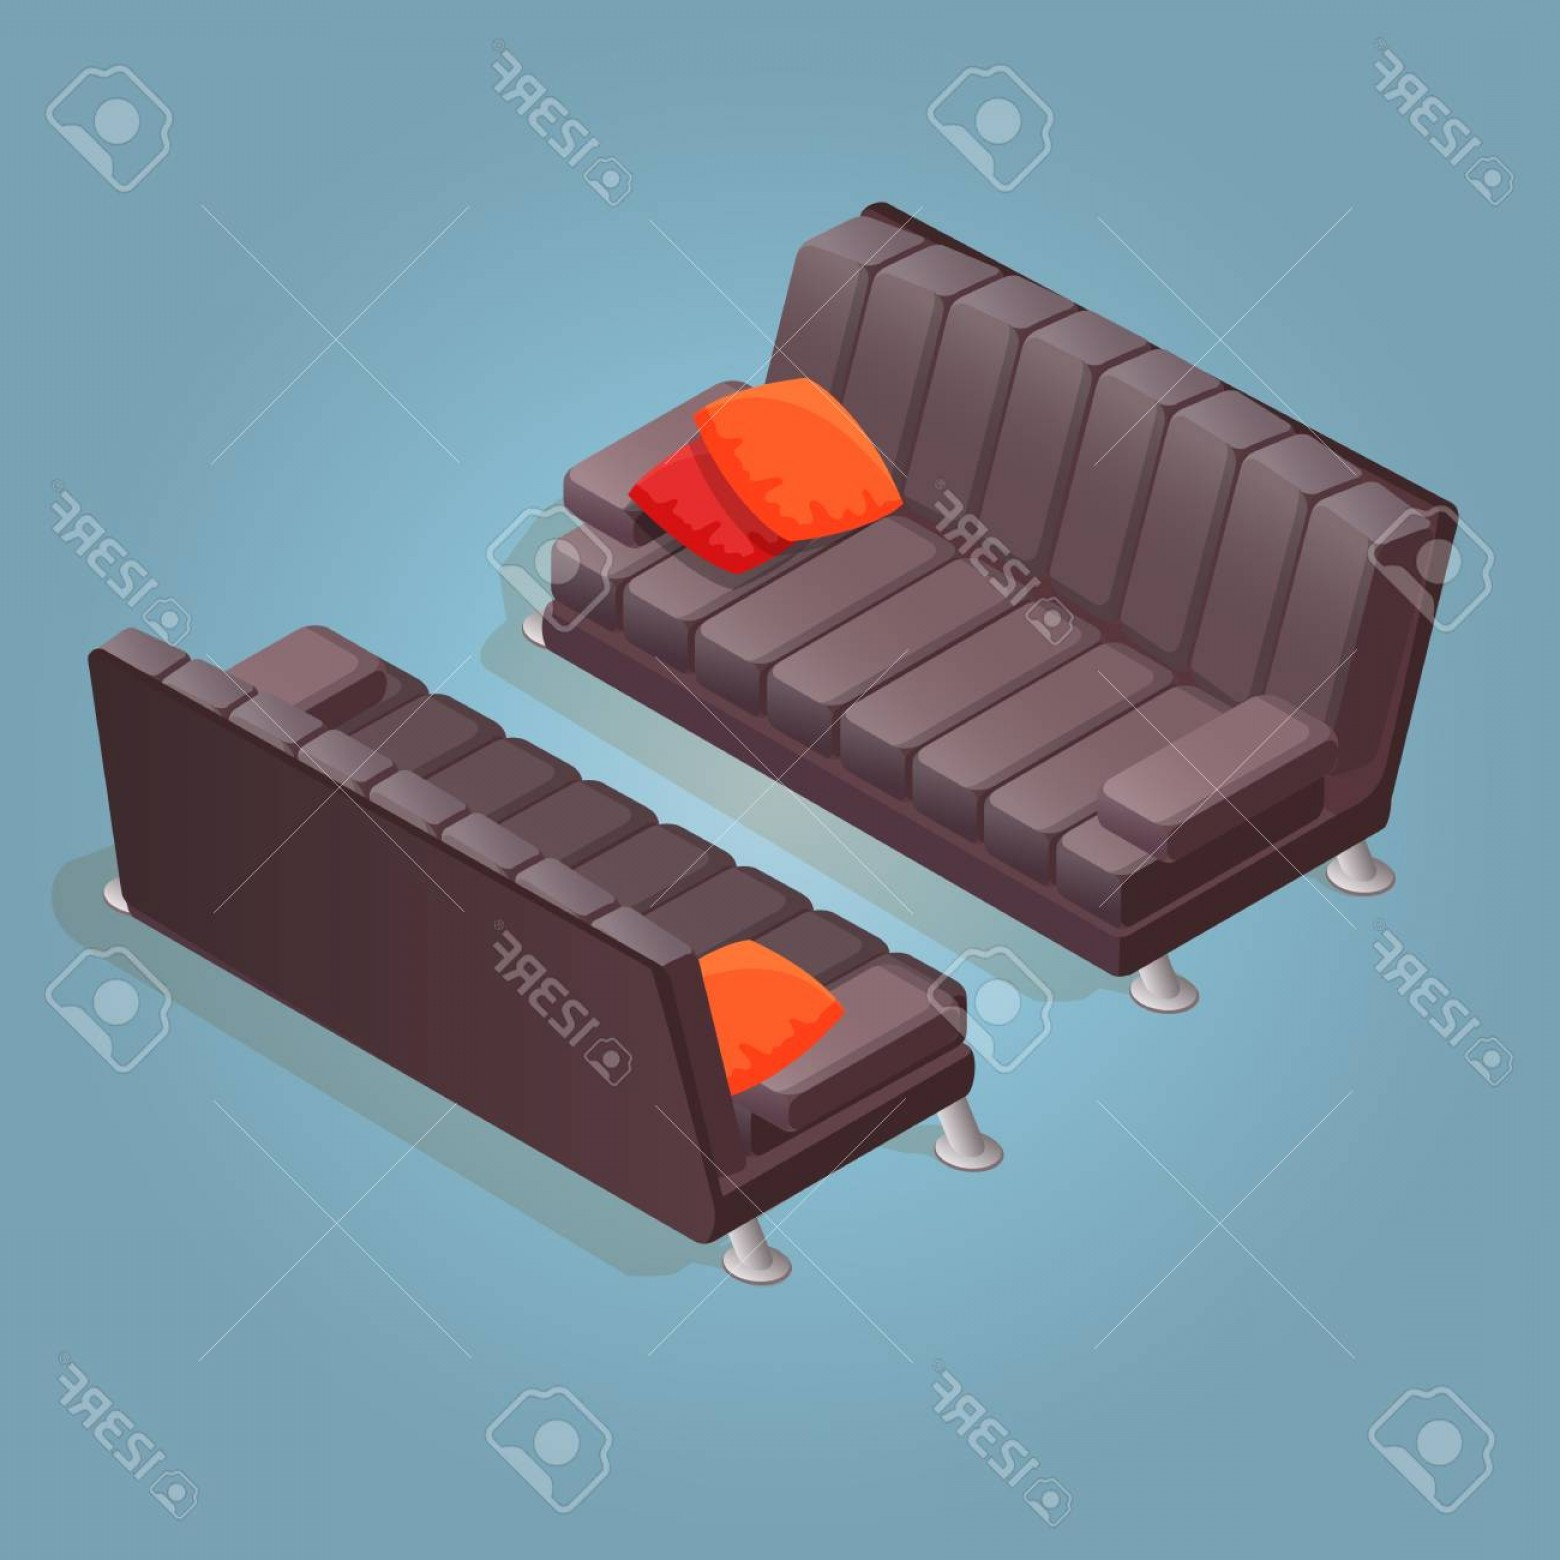 Back Of The Couch Vector: Photostock Vector Isometric Cartoon Sofa Icon Isolated On Blue Couch With Dark Upholstery Front And Back Vector Flat S